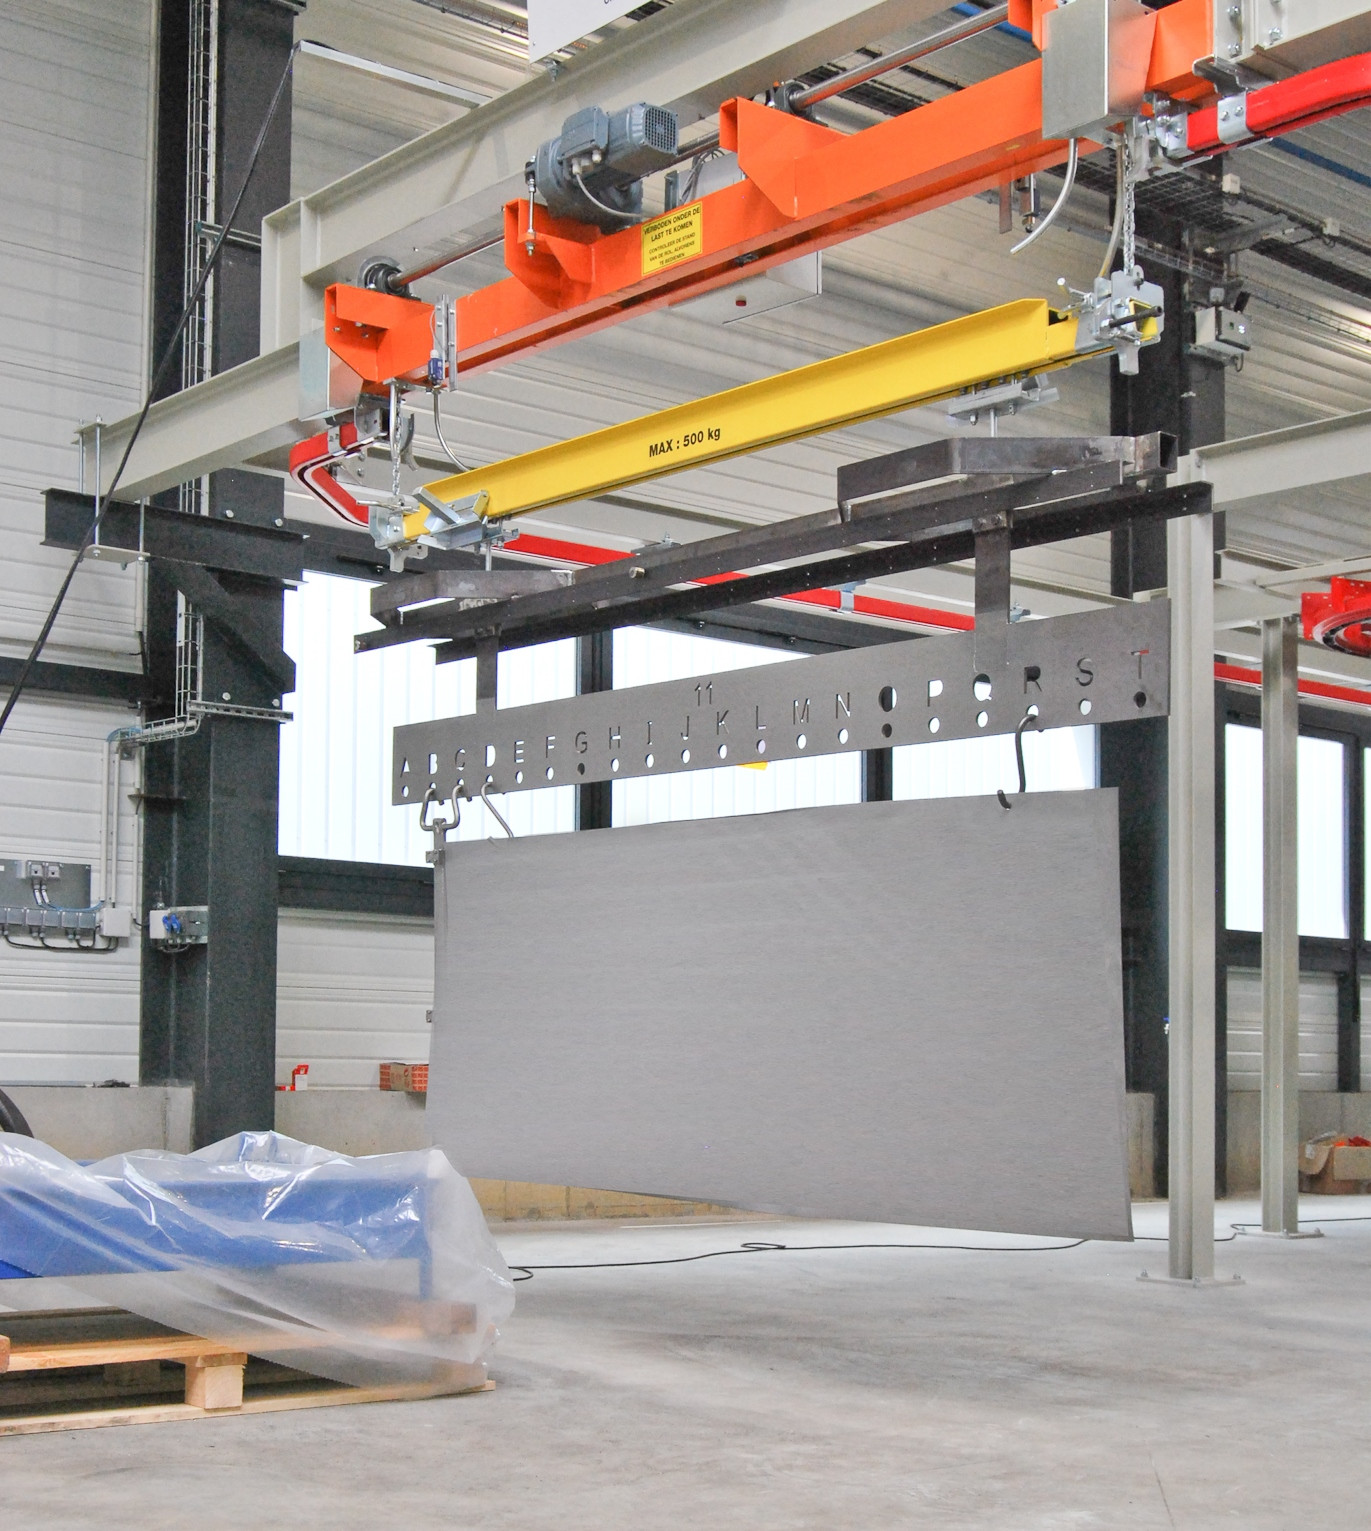 Electric lift-lower device to easily hang on heavy parts